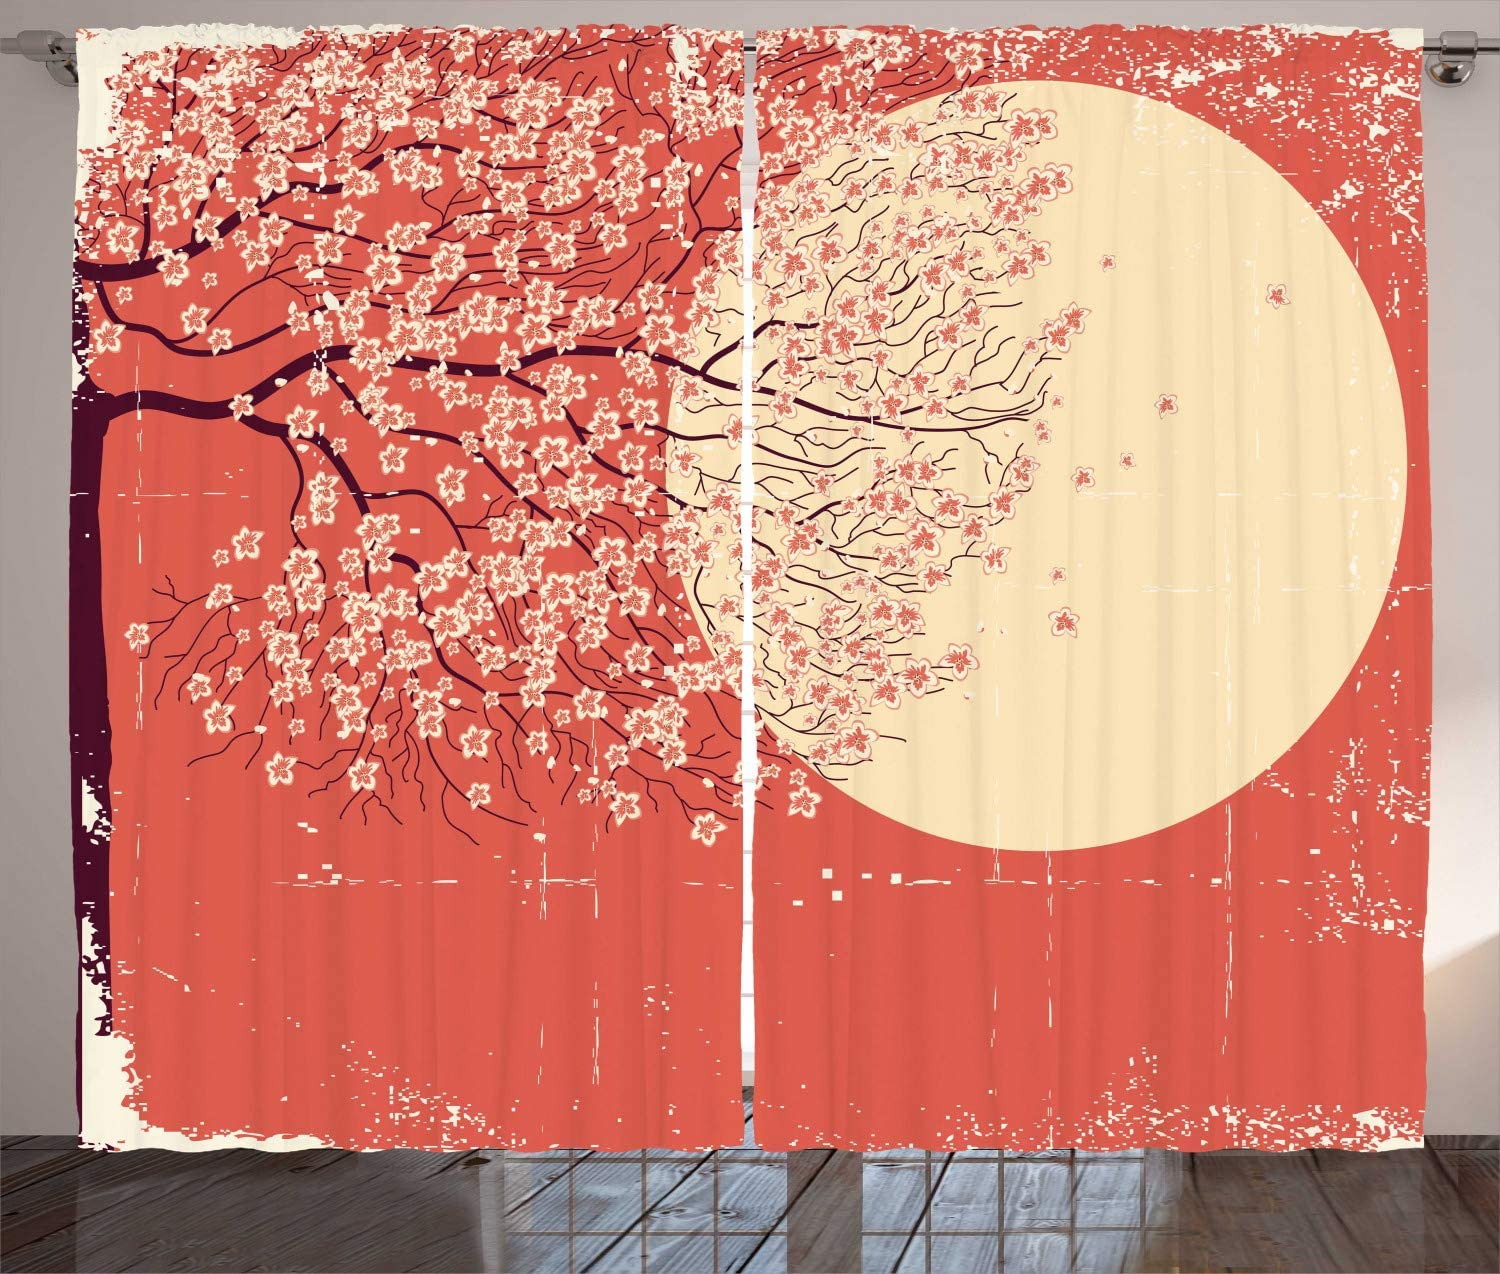 """Ambesonne Spring Curtains, Cherry Blossom Sakura Tree Branches on Moon Japanese Style Illustration, Living Room Bedroom Window Drapes 2 Panel Set, 108"""" X 108"""", Yellow Coral"""